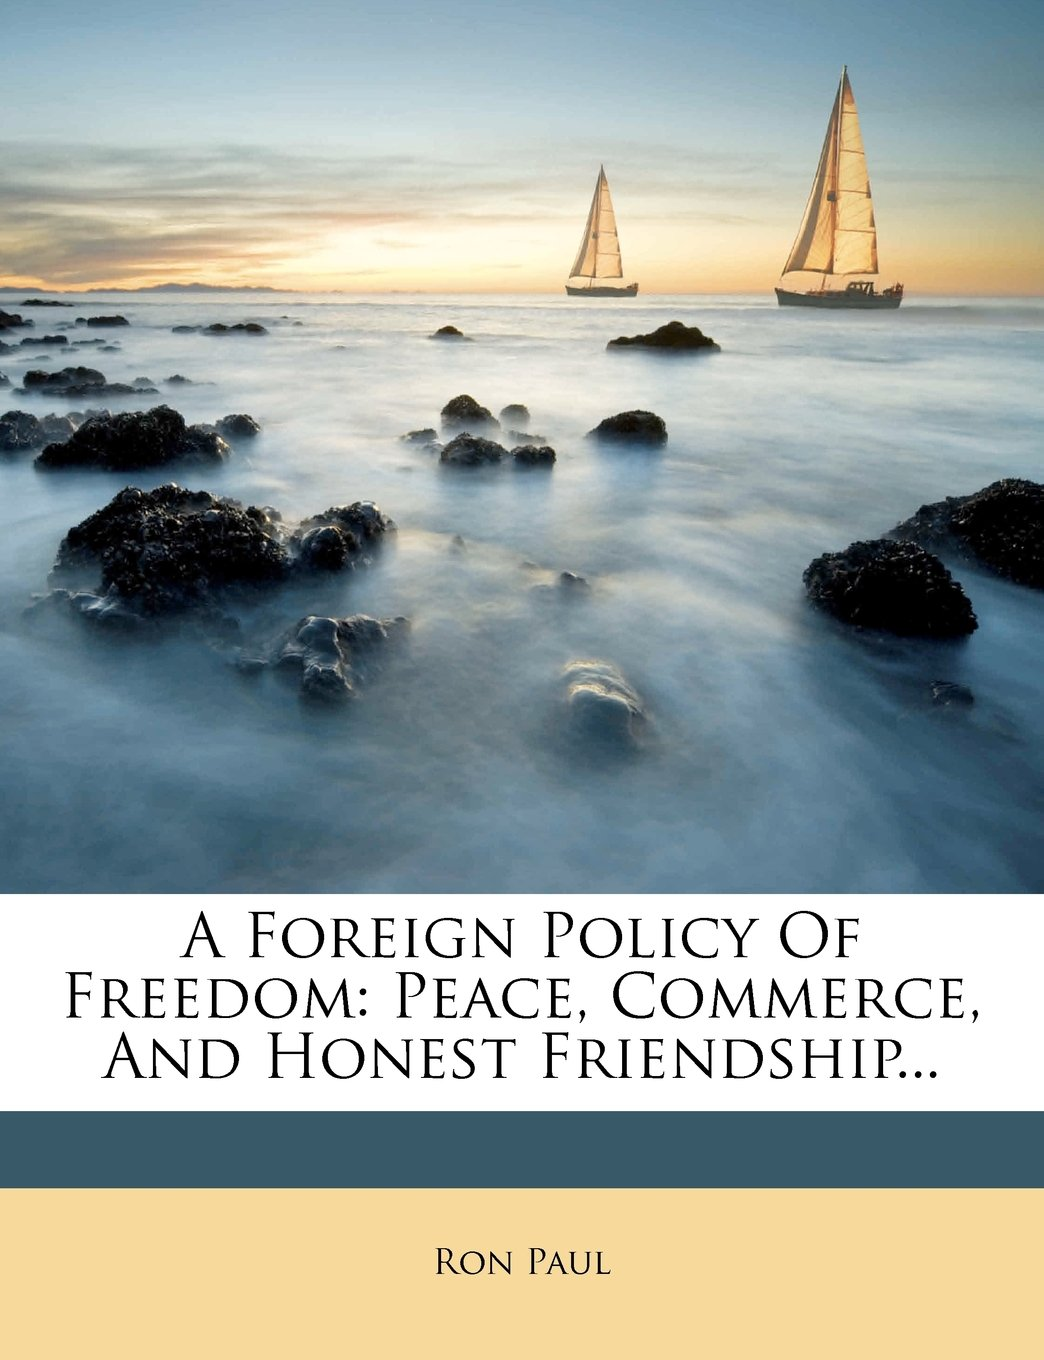 A Foreign Policy Of Freedom: Peace,merce, And Honest Friendship: Ron  Paul: 9781279702970: Amazon: Books